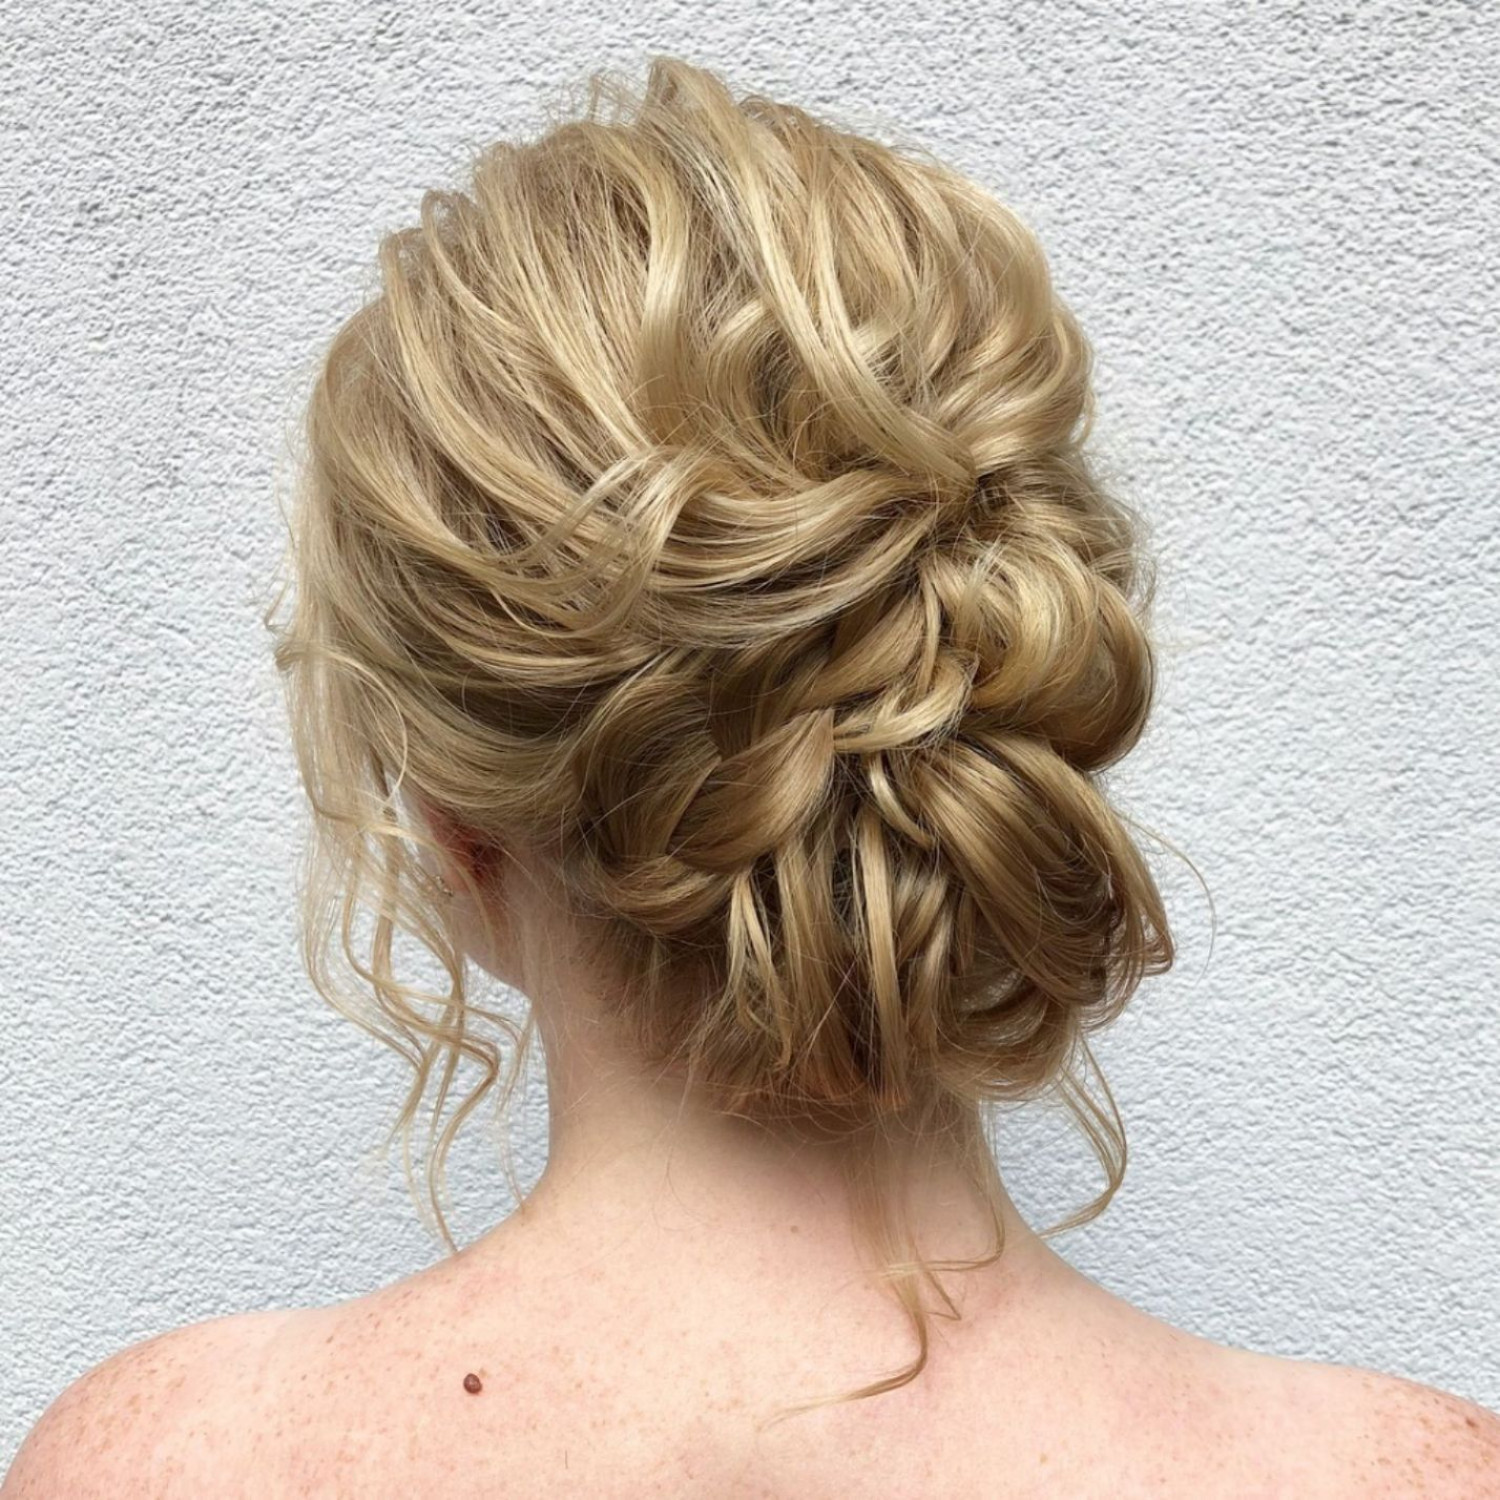 Best Prom Hairstyles for Shoulder Length Hair   Visual.ly